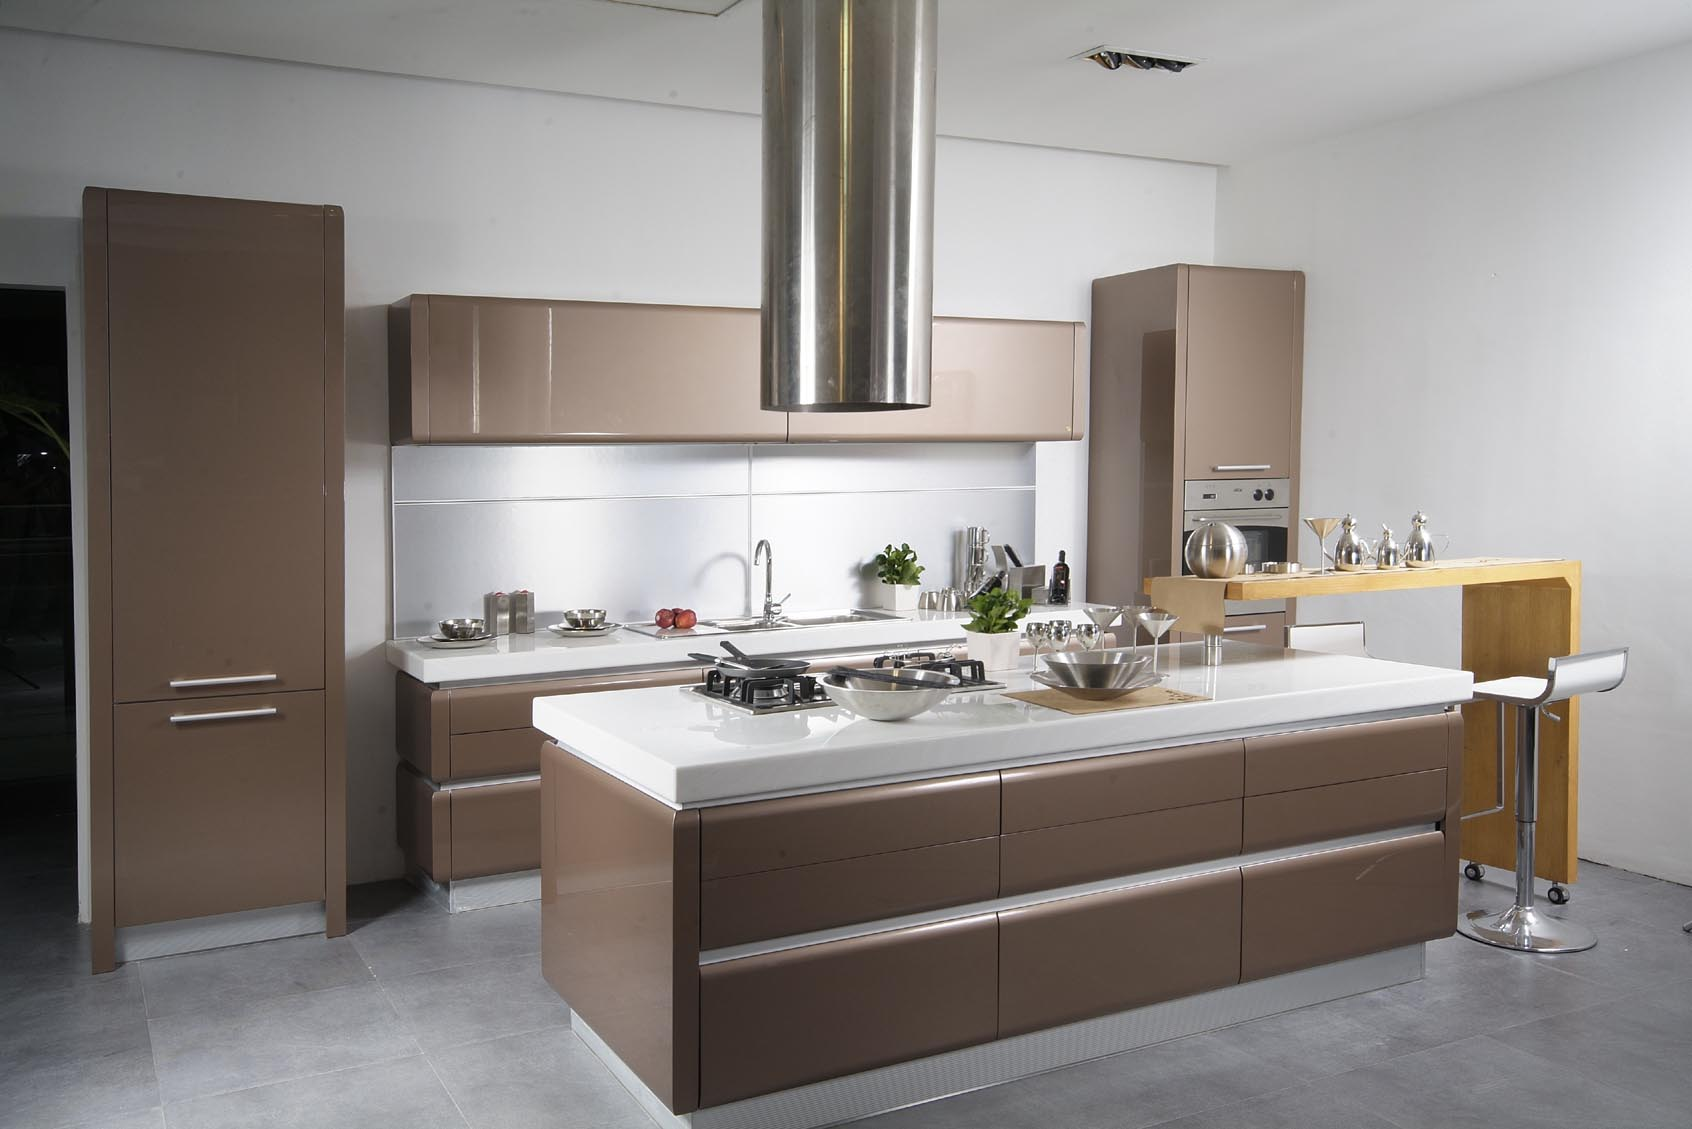 modern-kitchen-cabinets-design-as-modern-kitchen-cabinet-doors-as-the-artistic-ideas-the-inspiration-room-to-renovation-Kitchen-you-51